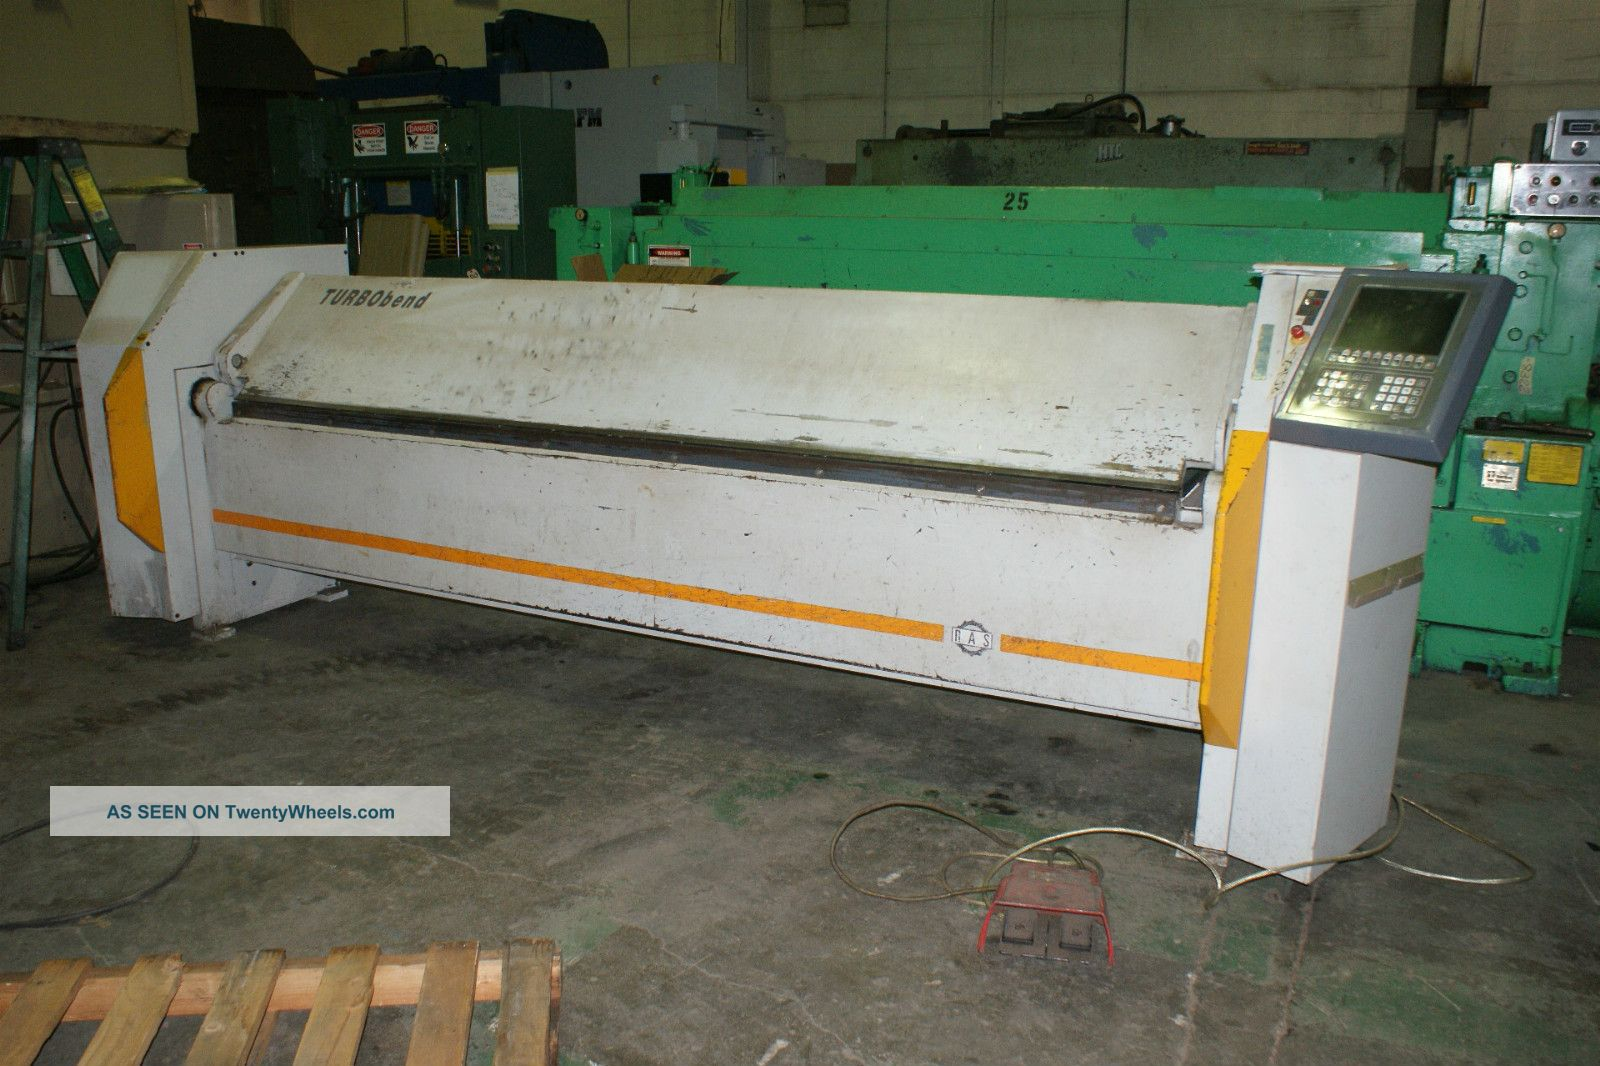 Ras 2003 Turbobend 10 ' X 16ga.  Model 61.  31 Cnc Power Sheet Metal Folder Metal Bending Machines photo